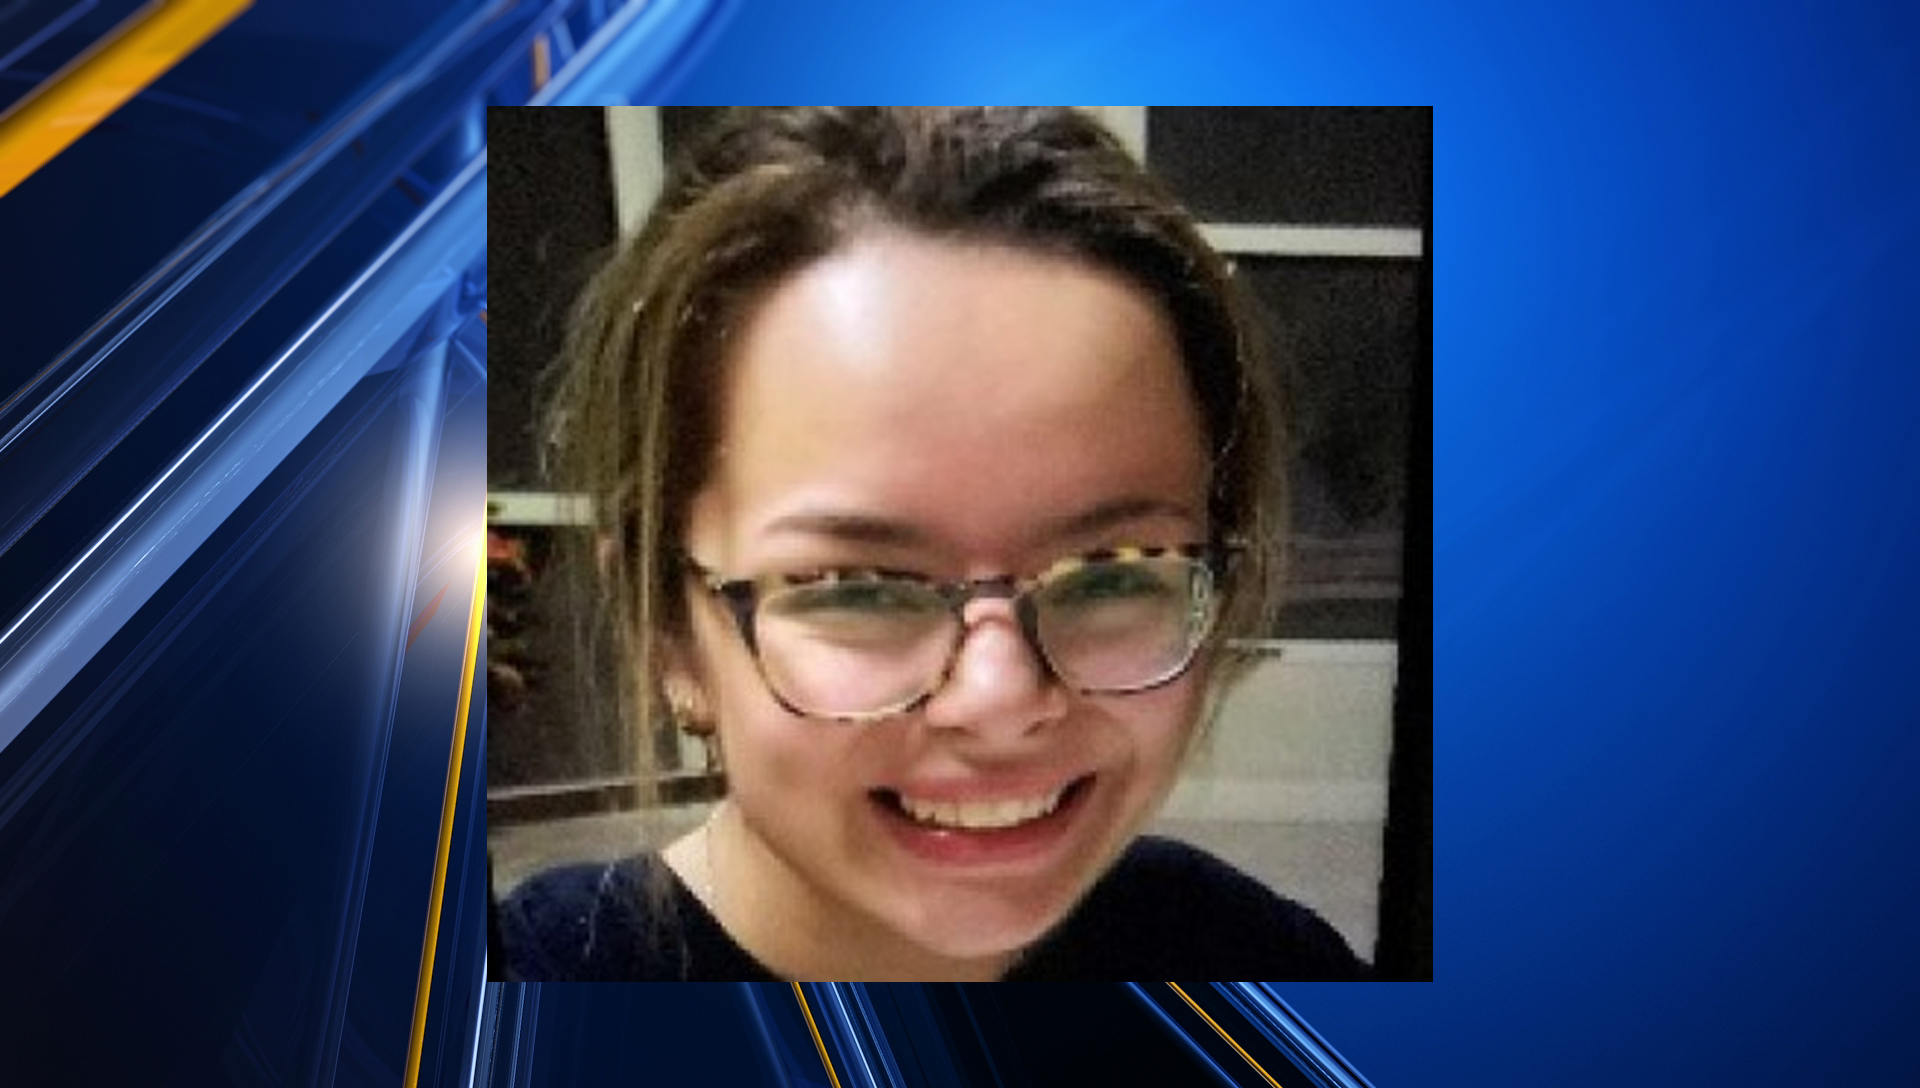 Amber Alert Issued For Missing 17 Year Old Girl Last Seen In San Juan Texas Kxan Austin